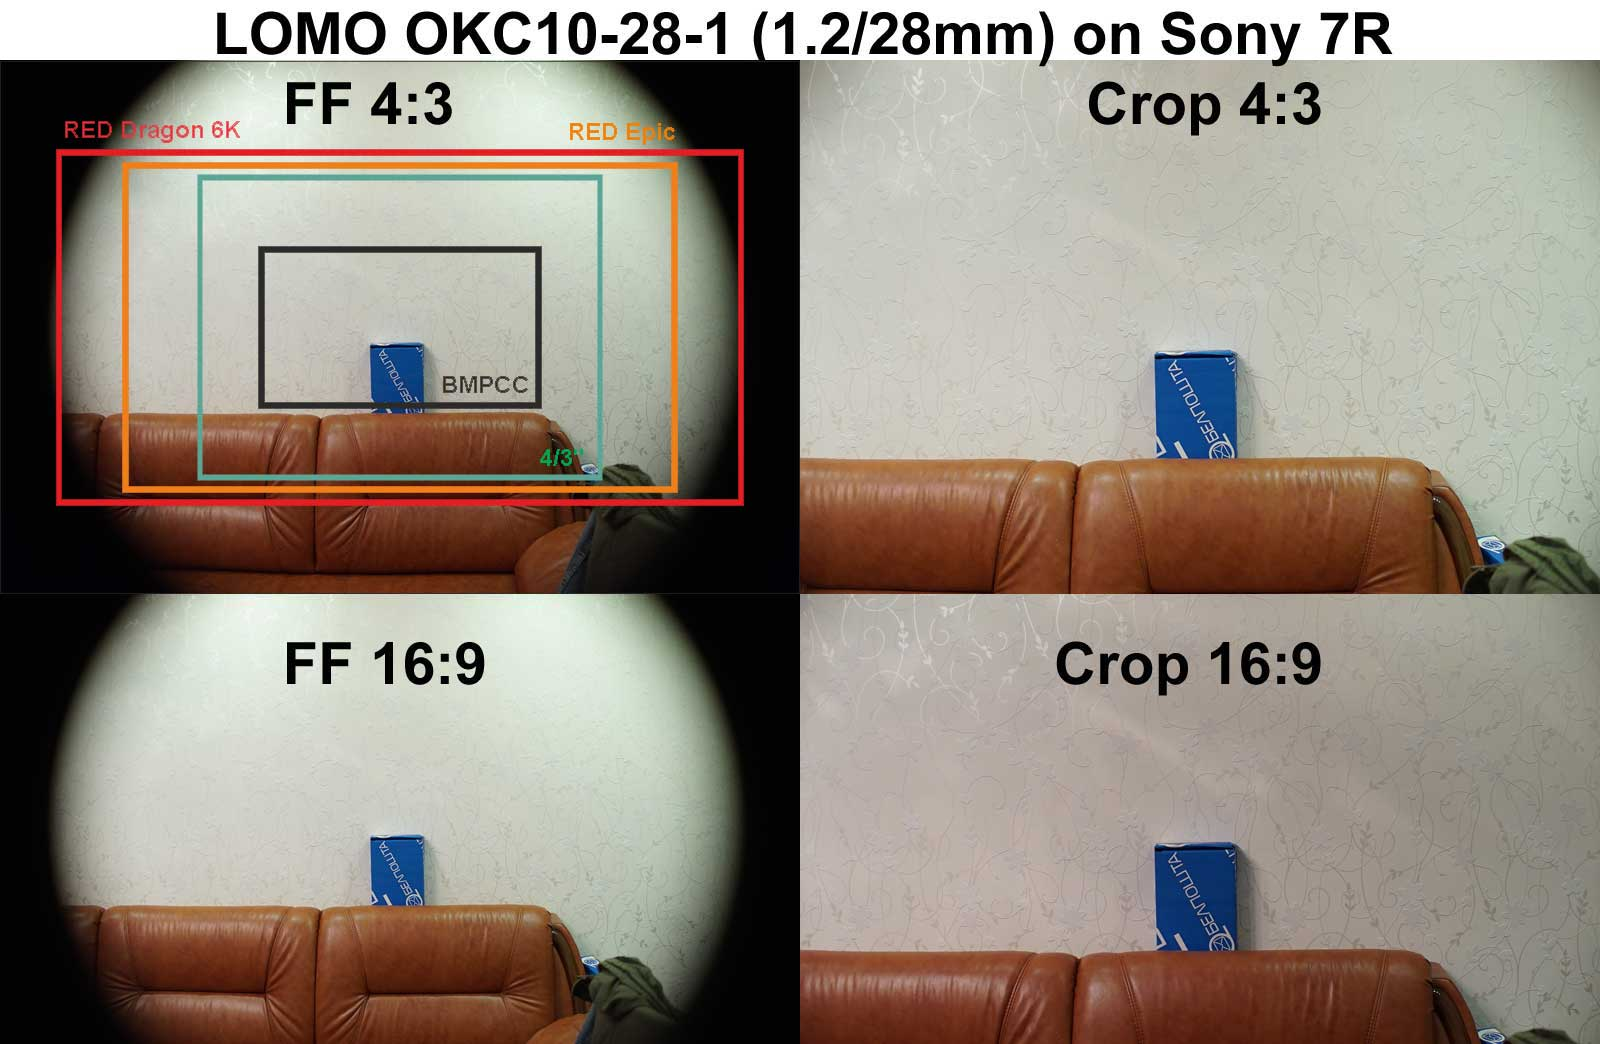 Coverage of LOMO OKC10-28-1 lens on Sony 7R camera